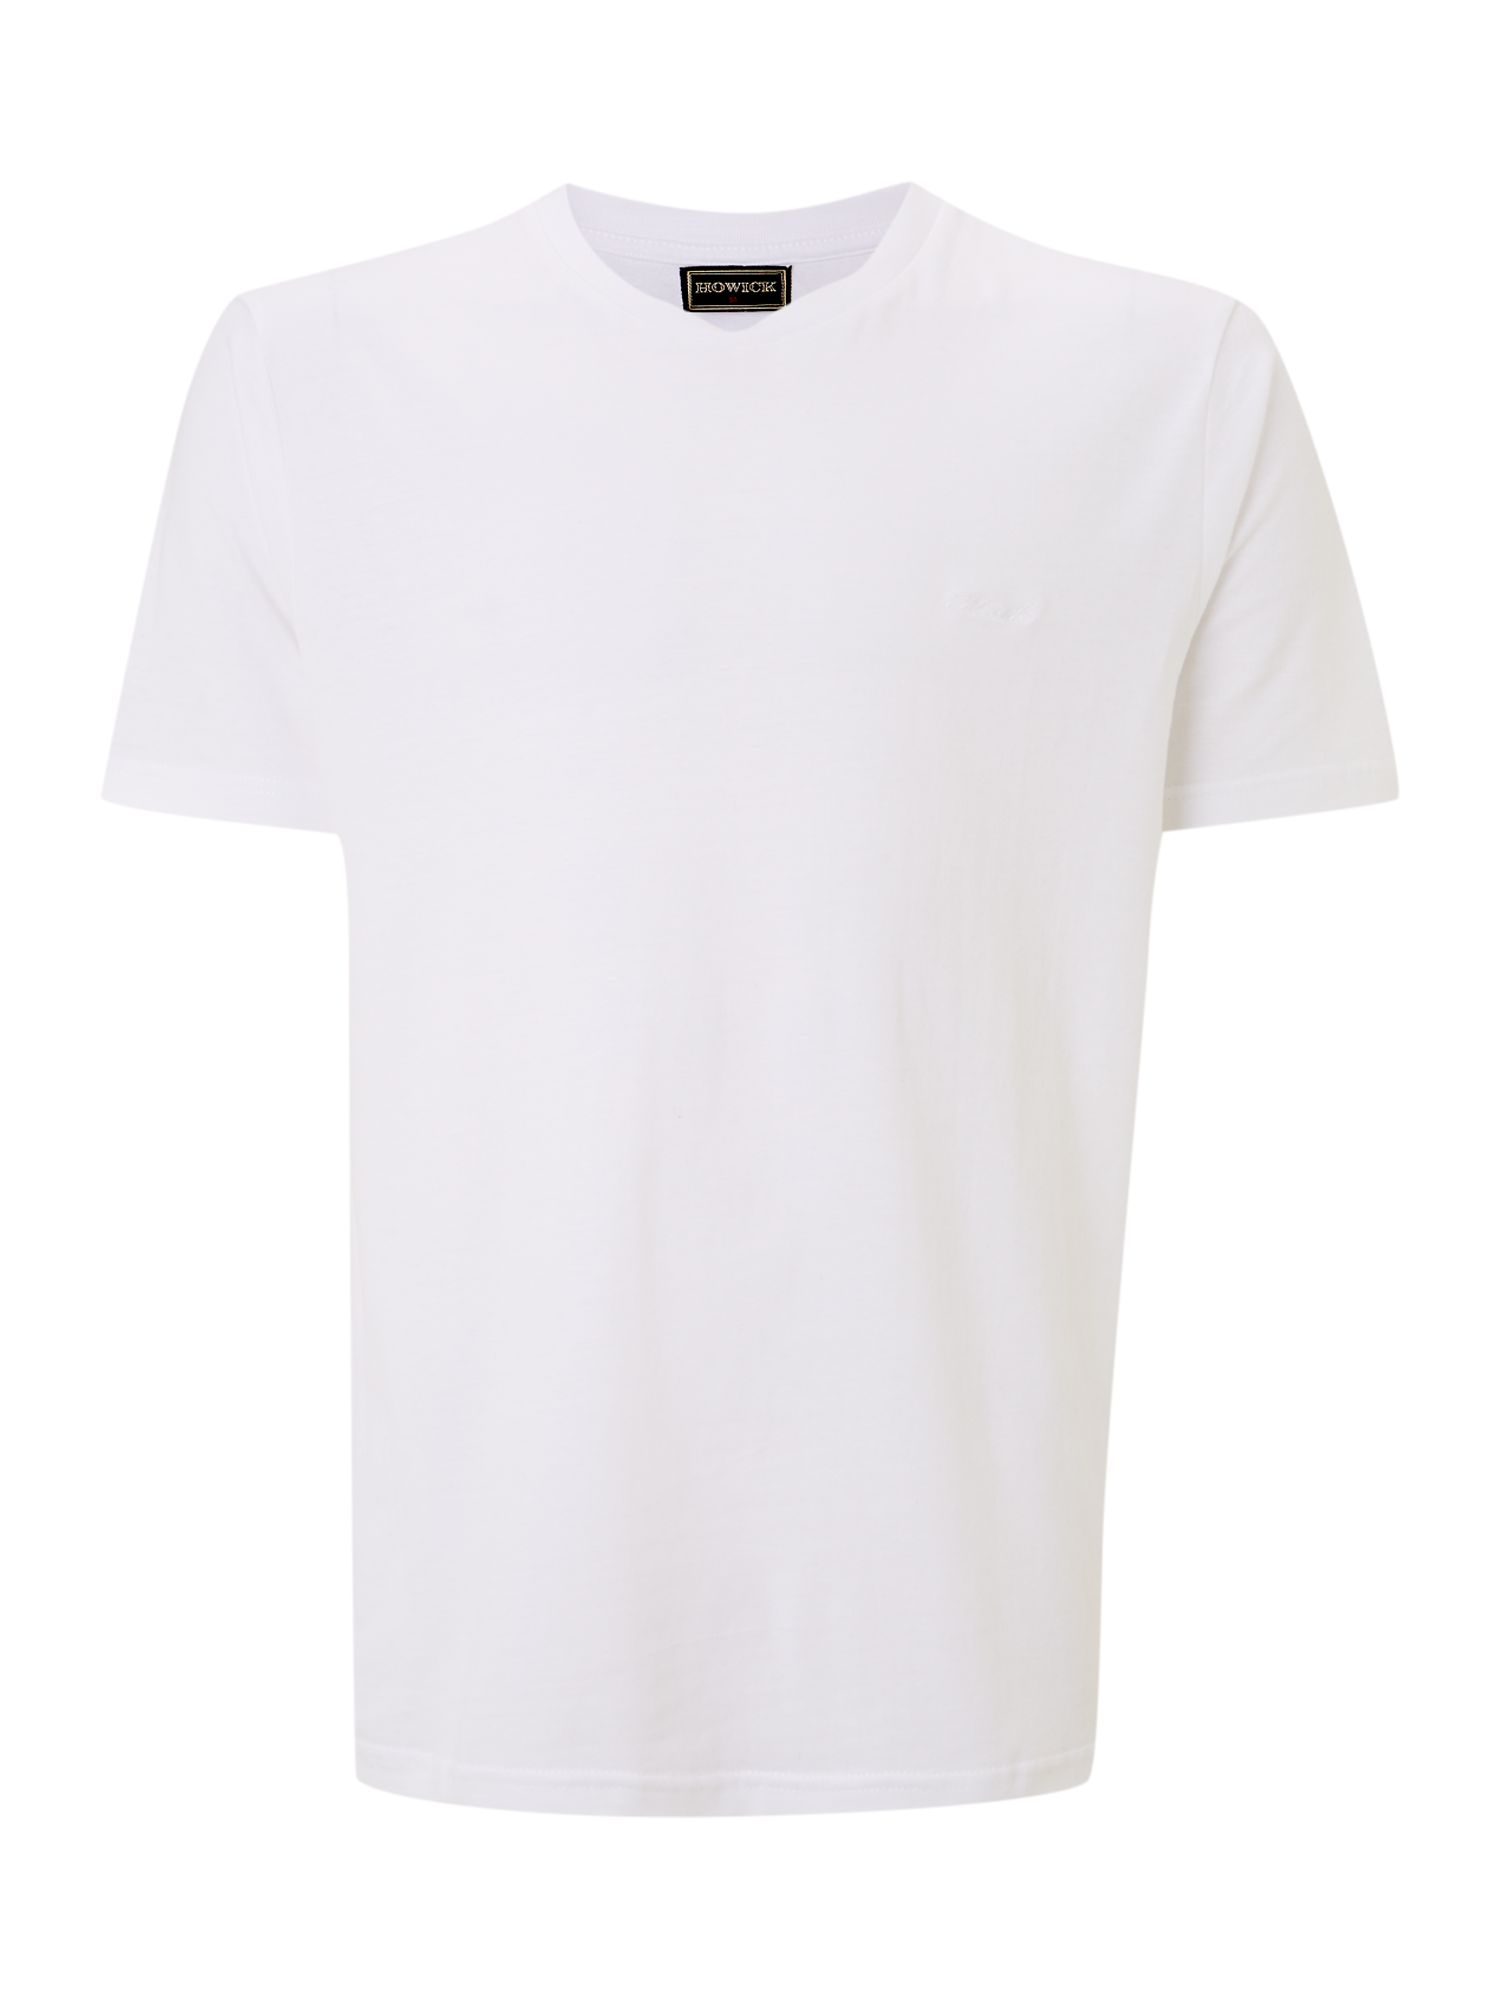 Nightwear short sleeve t-shirt